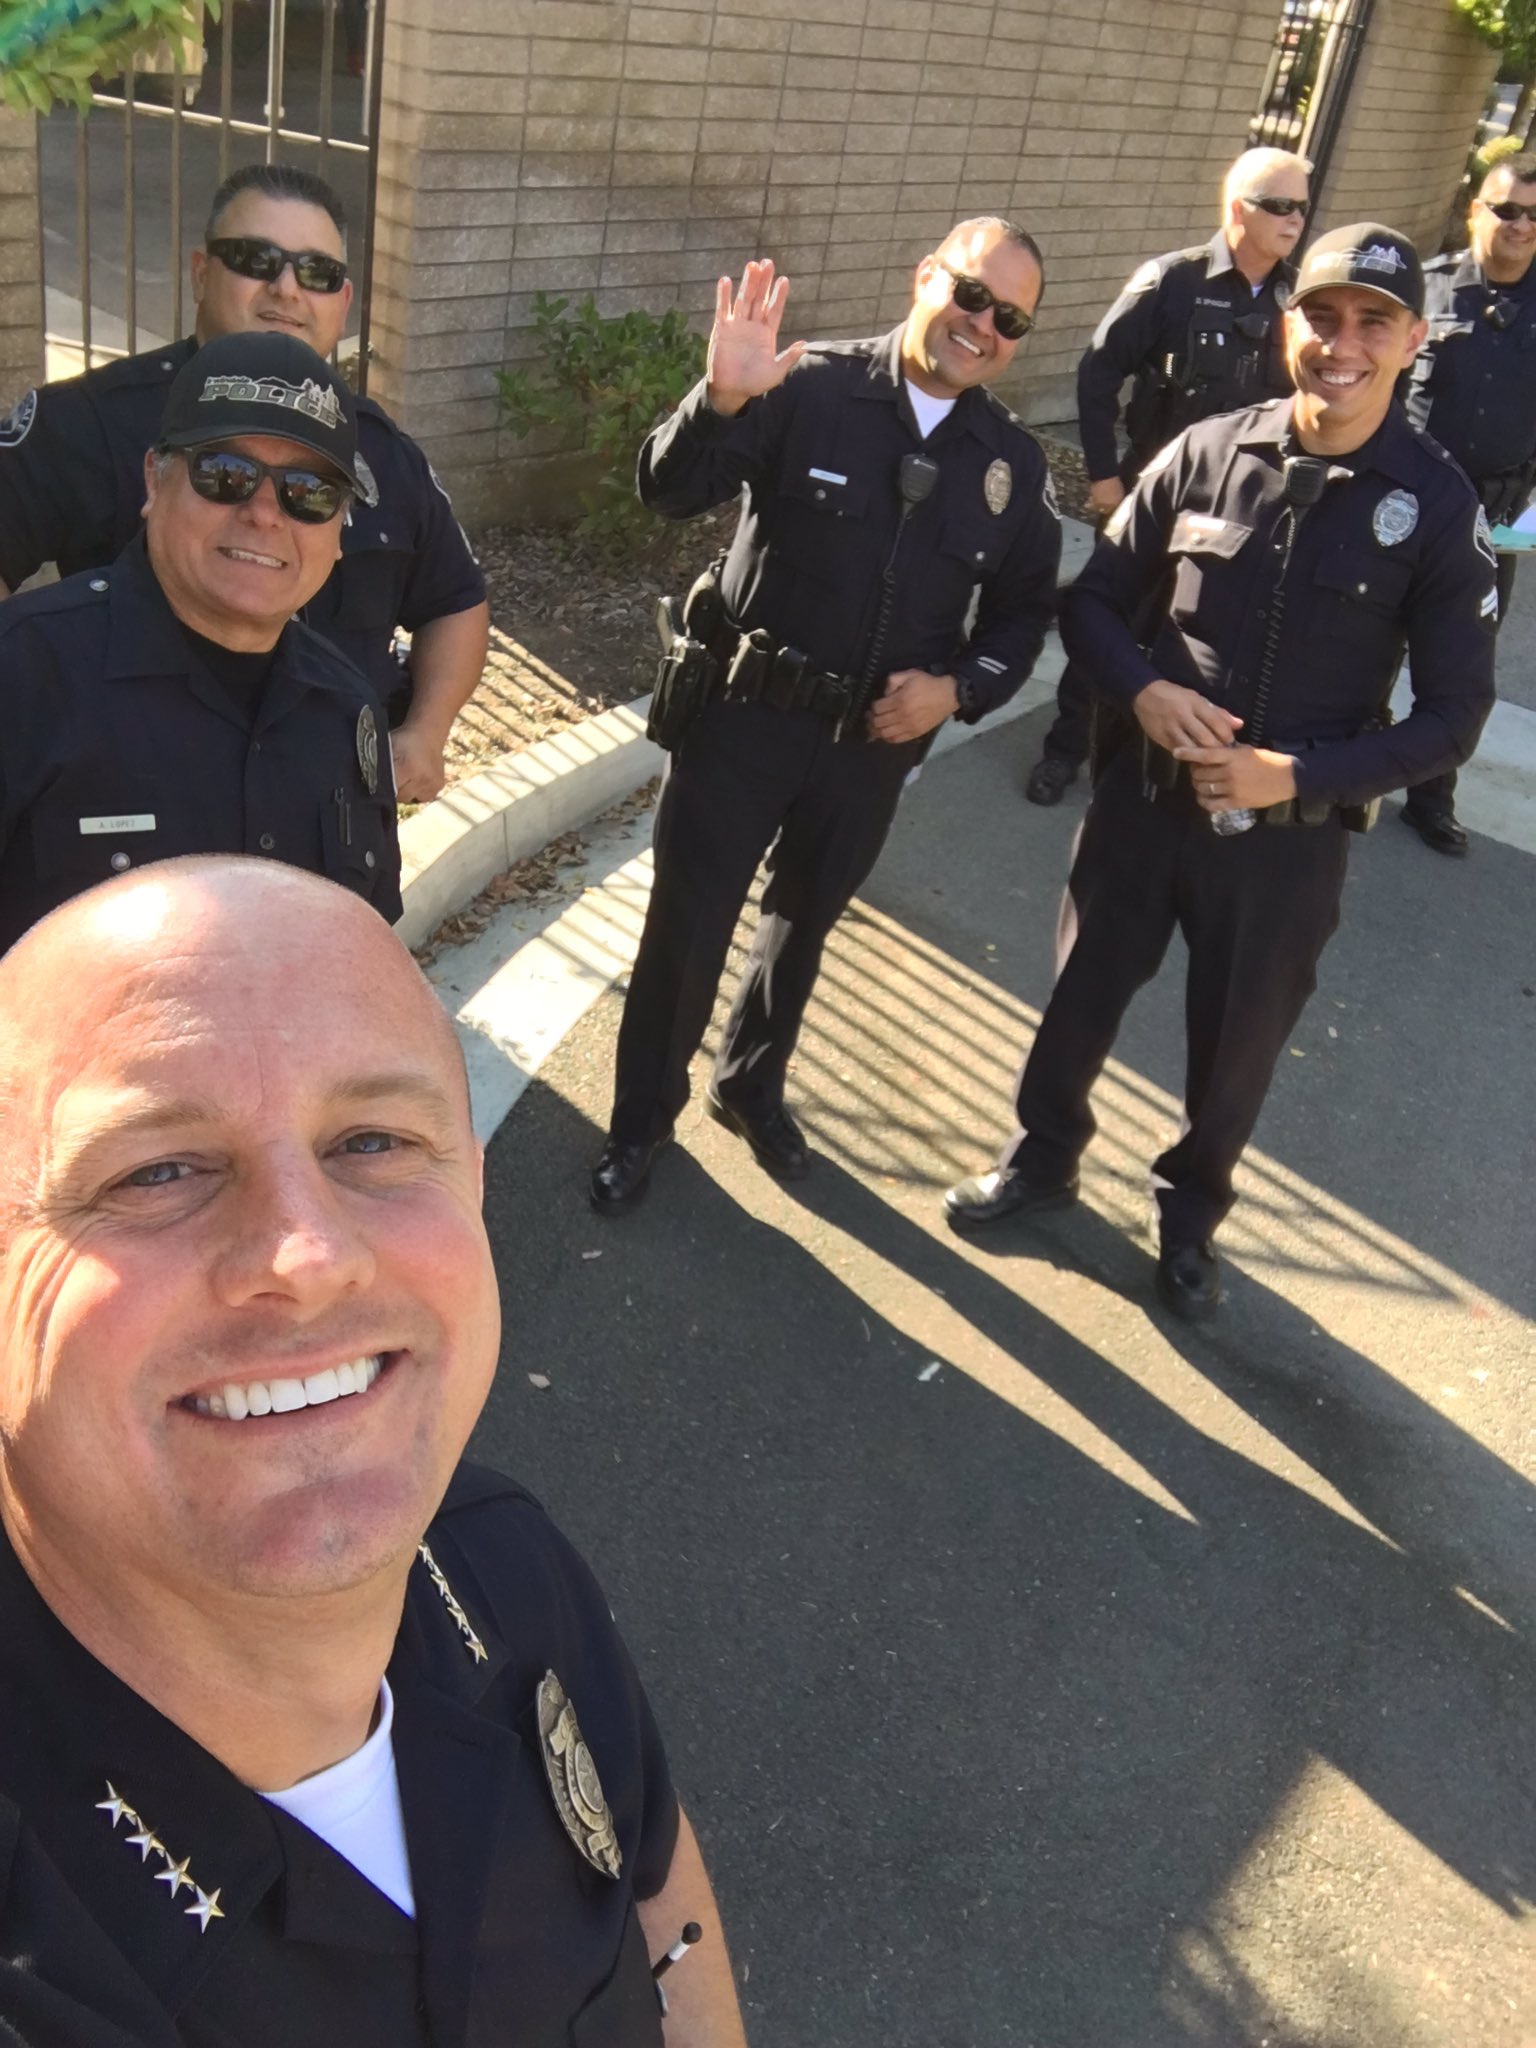 Police Officers smiling for candid photo